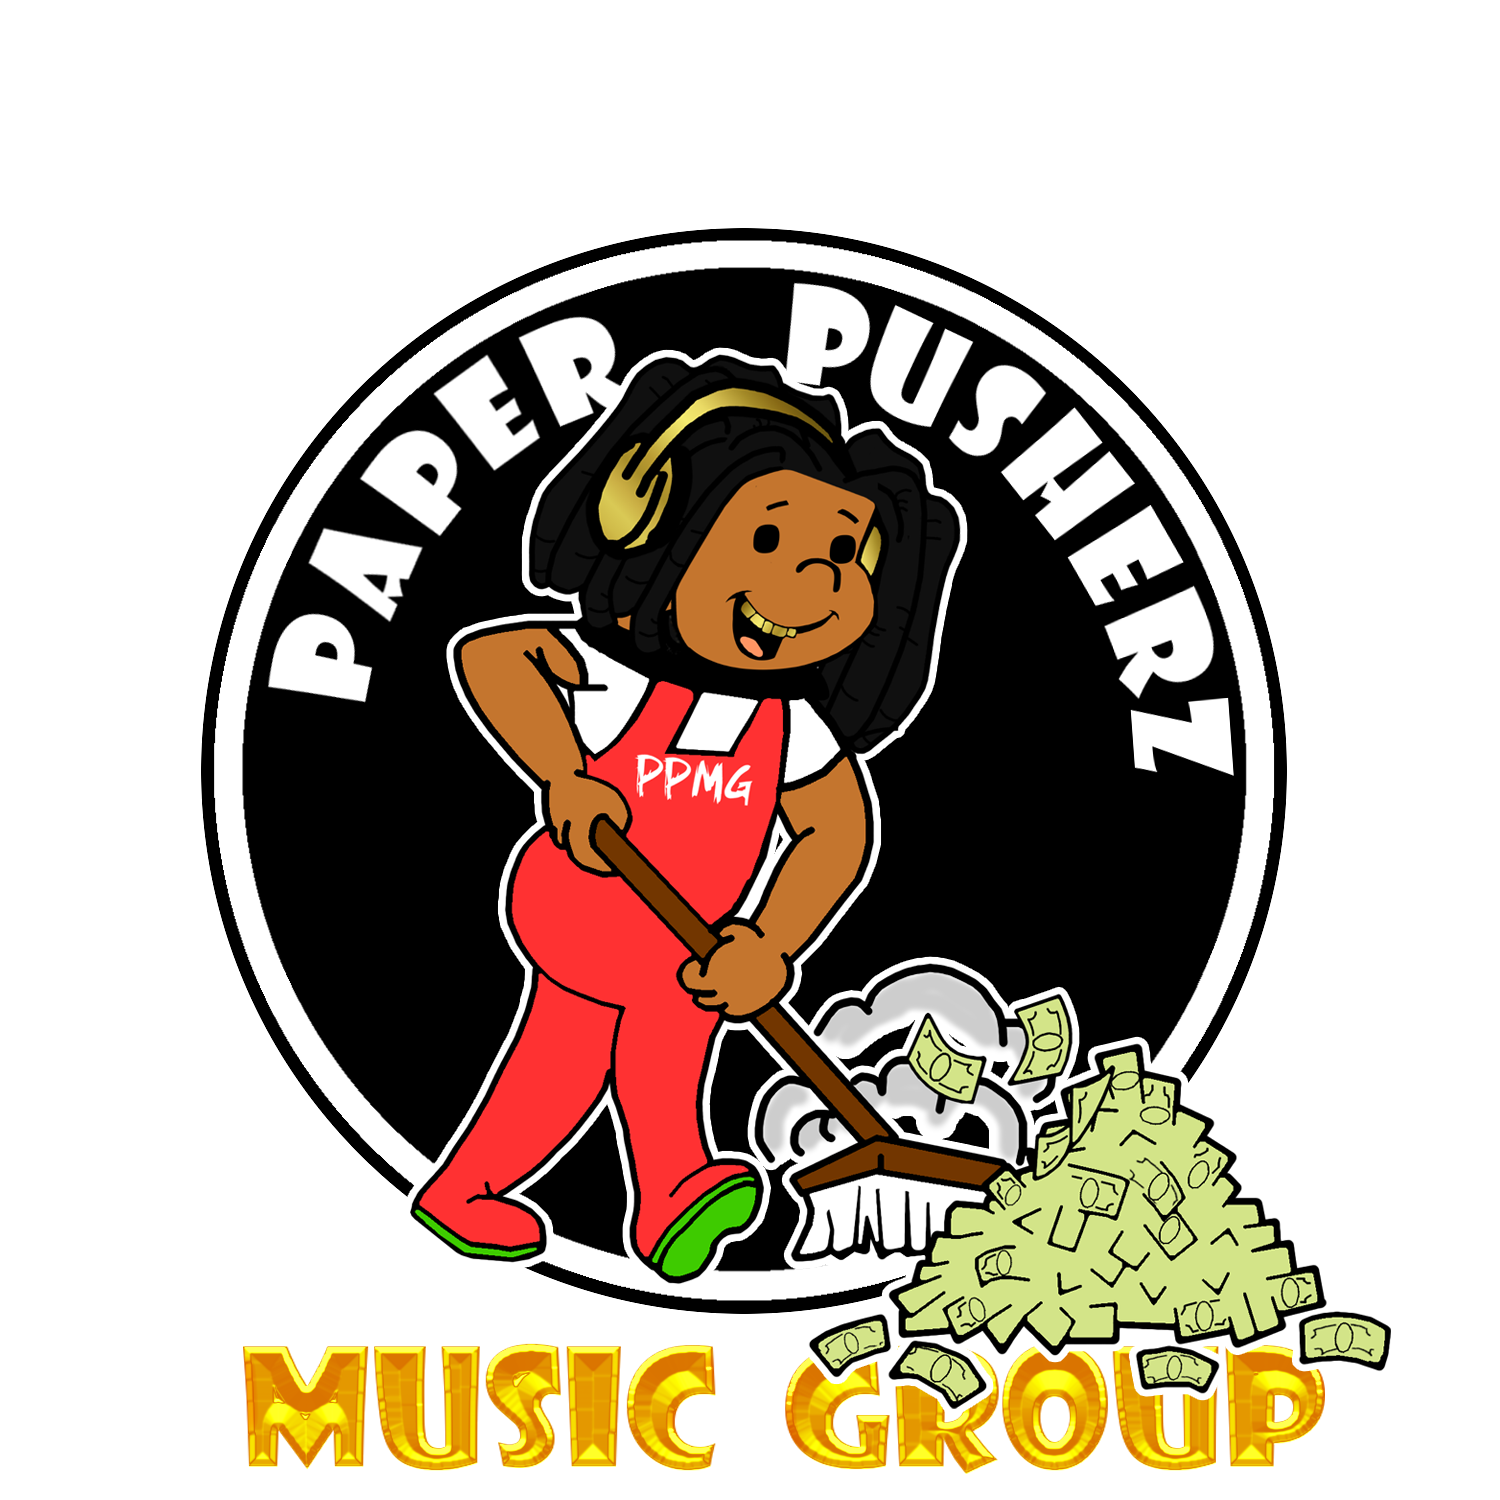 Paper Pusherz Music Group